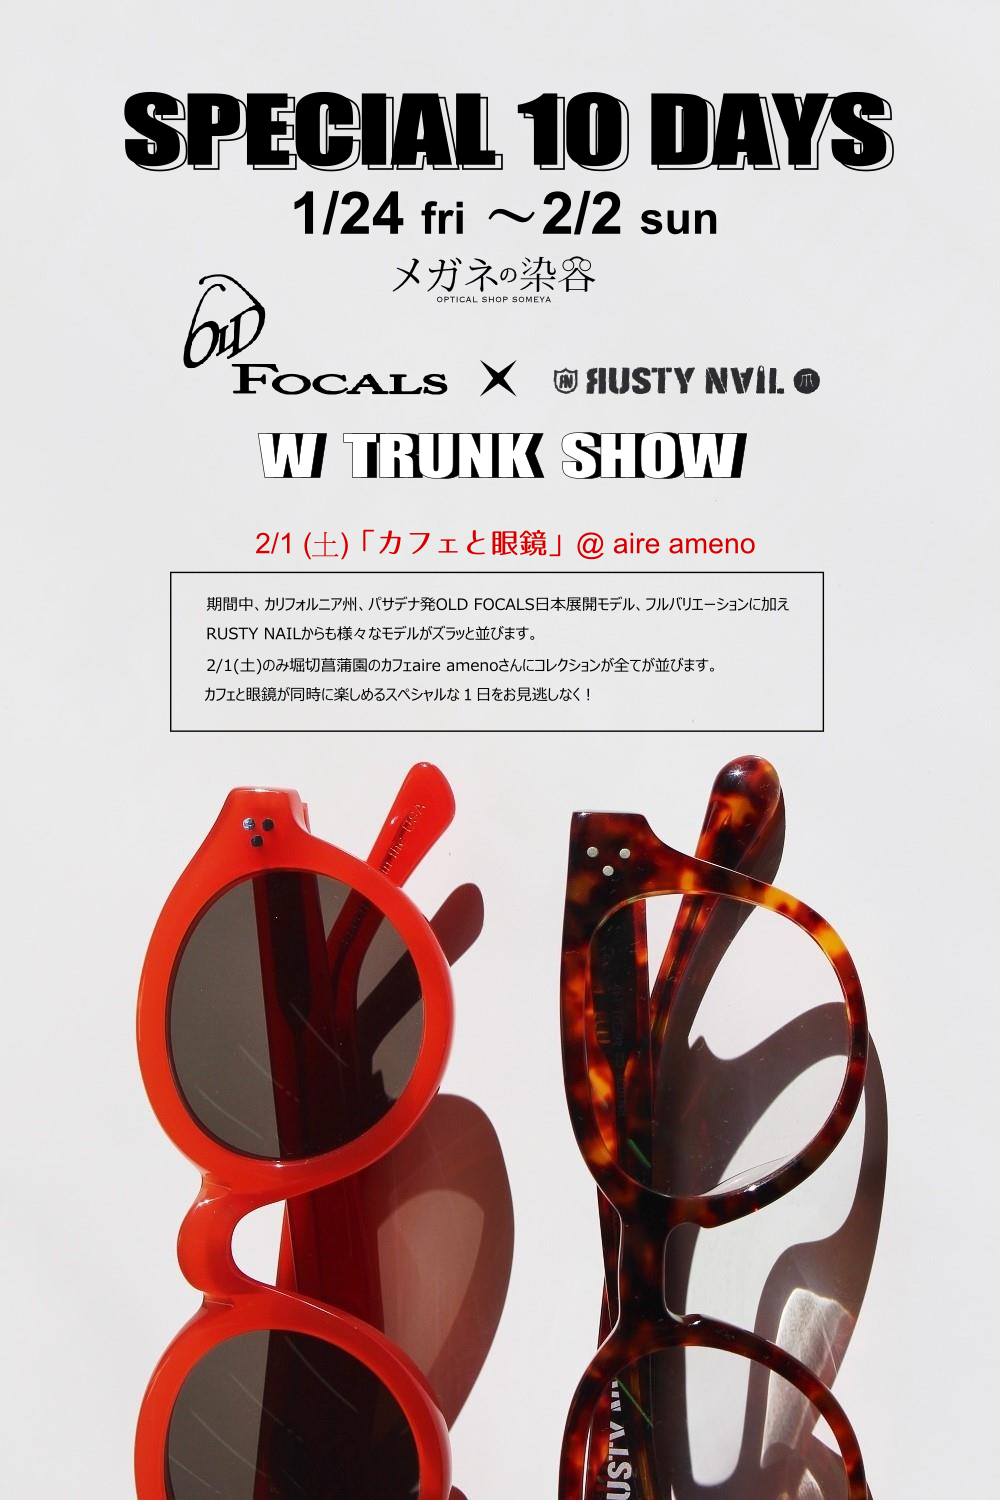 special10days(old focals & Rusty Nail W Trunk Show)